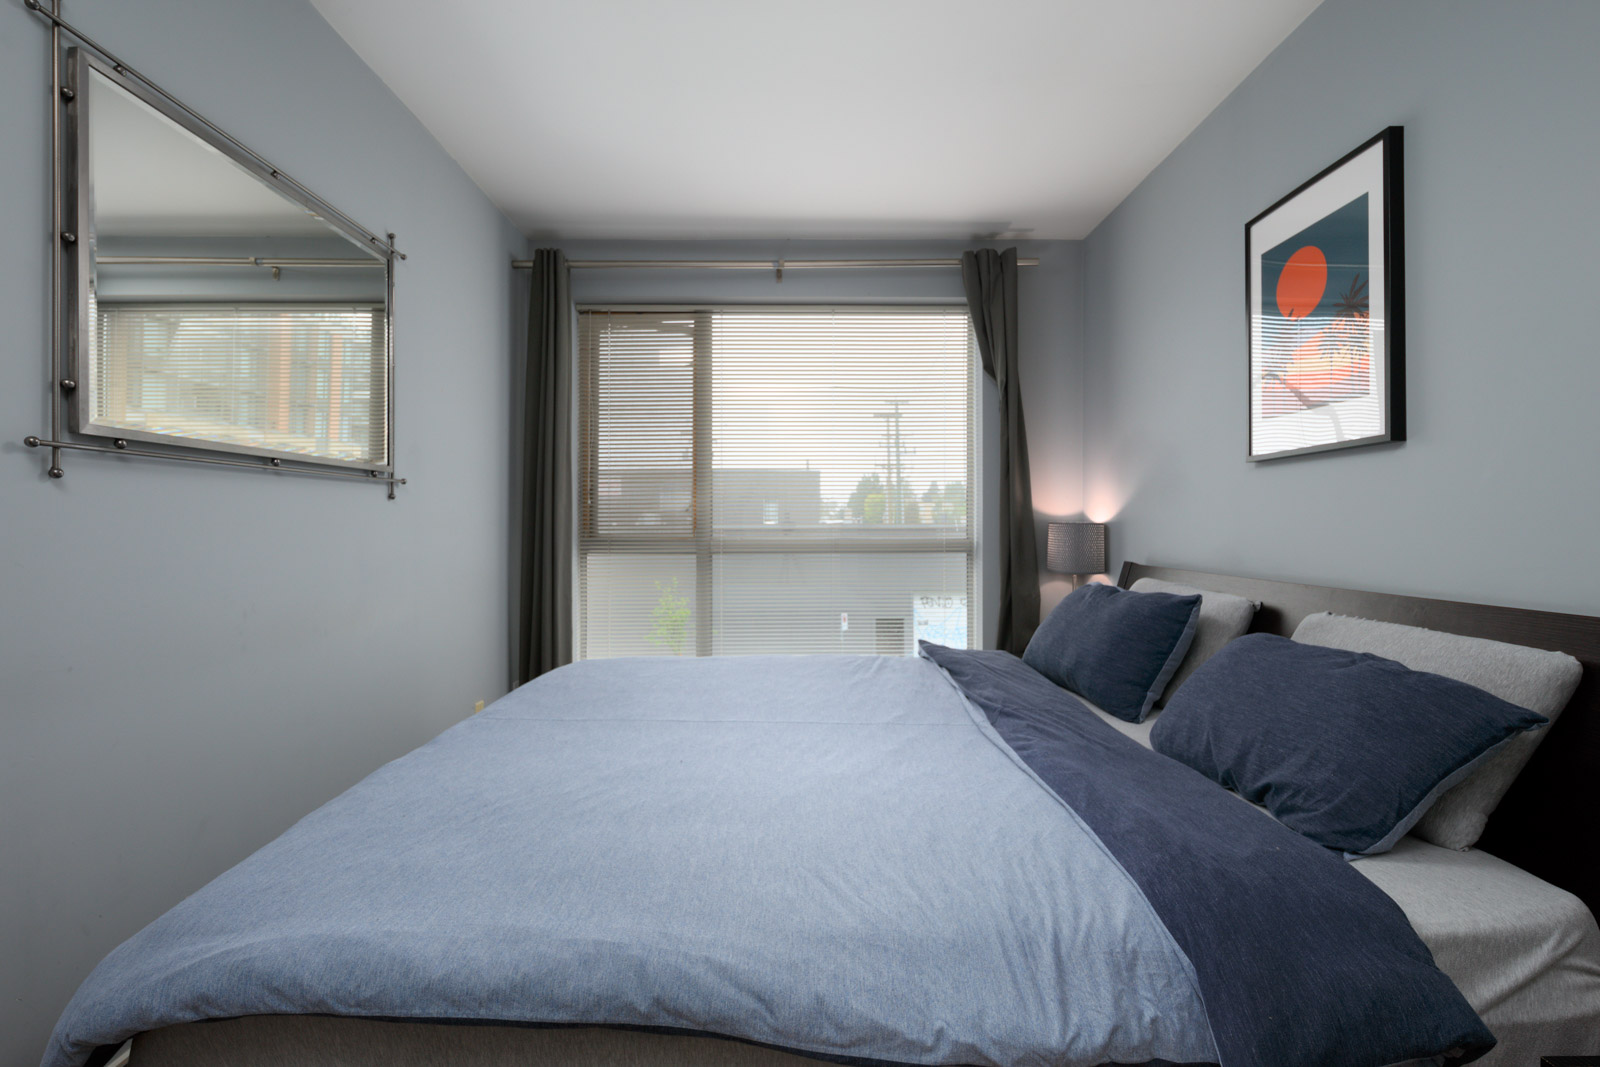 bedroom with closet in rental condo at Arbutus Outlook in the West End neighbourhood of Vancouver